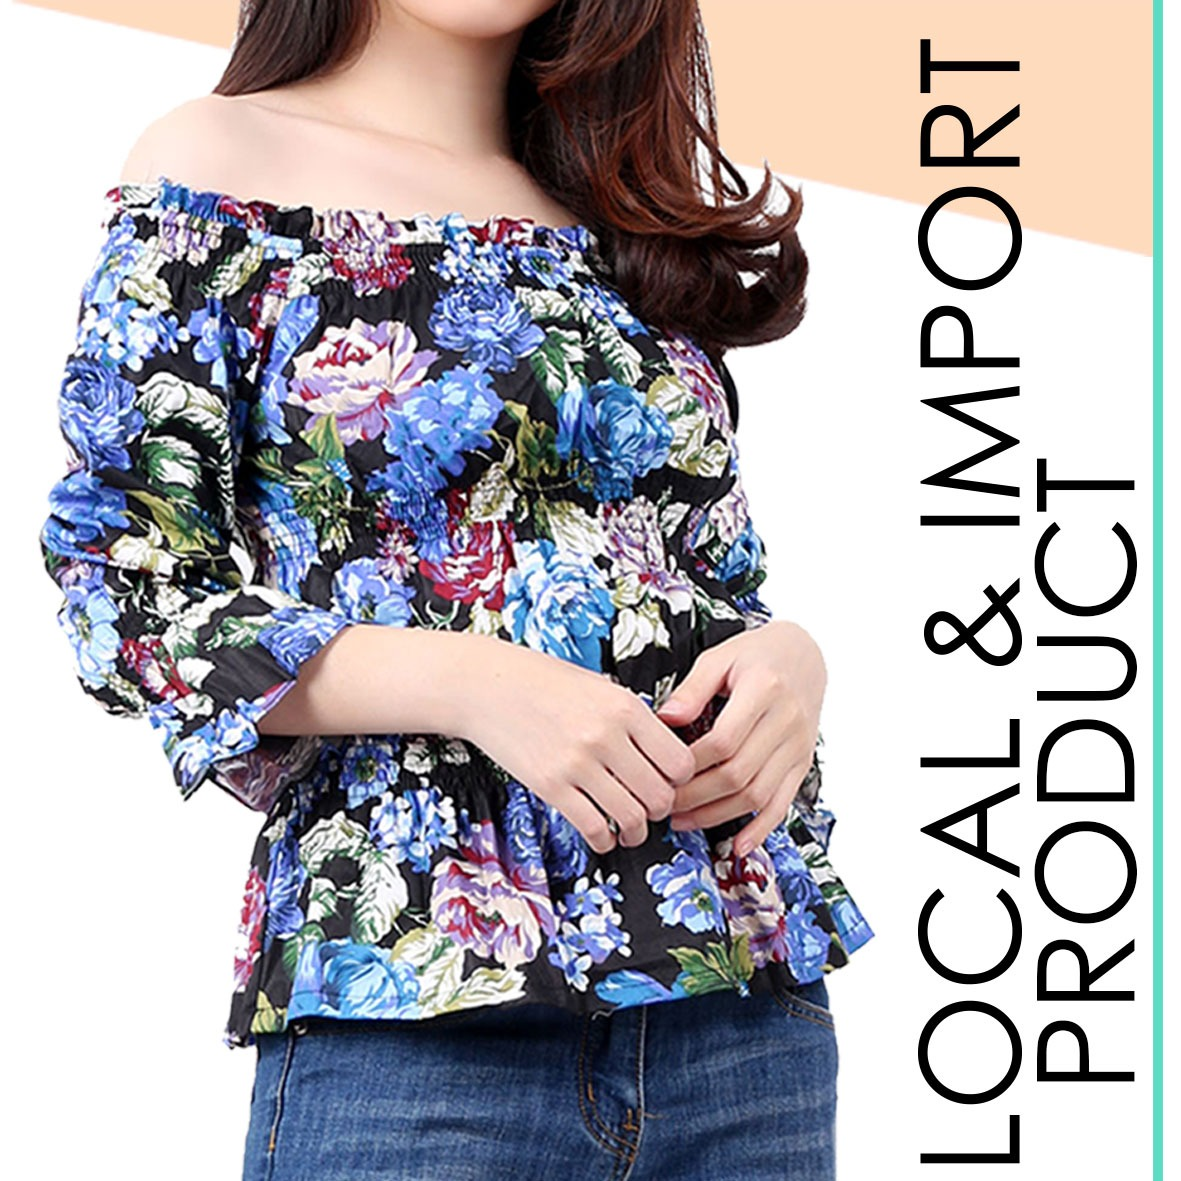 ... Dan Harga Terbaru. Source · Oma Holley Fashion Sweta Sweater Combi  Lengan Panjang - Size M 8937e6ba9c